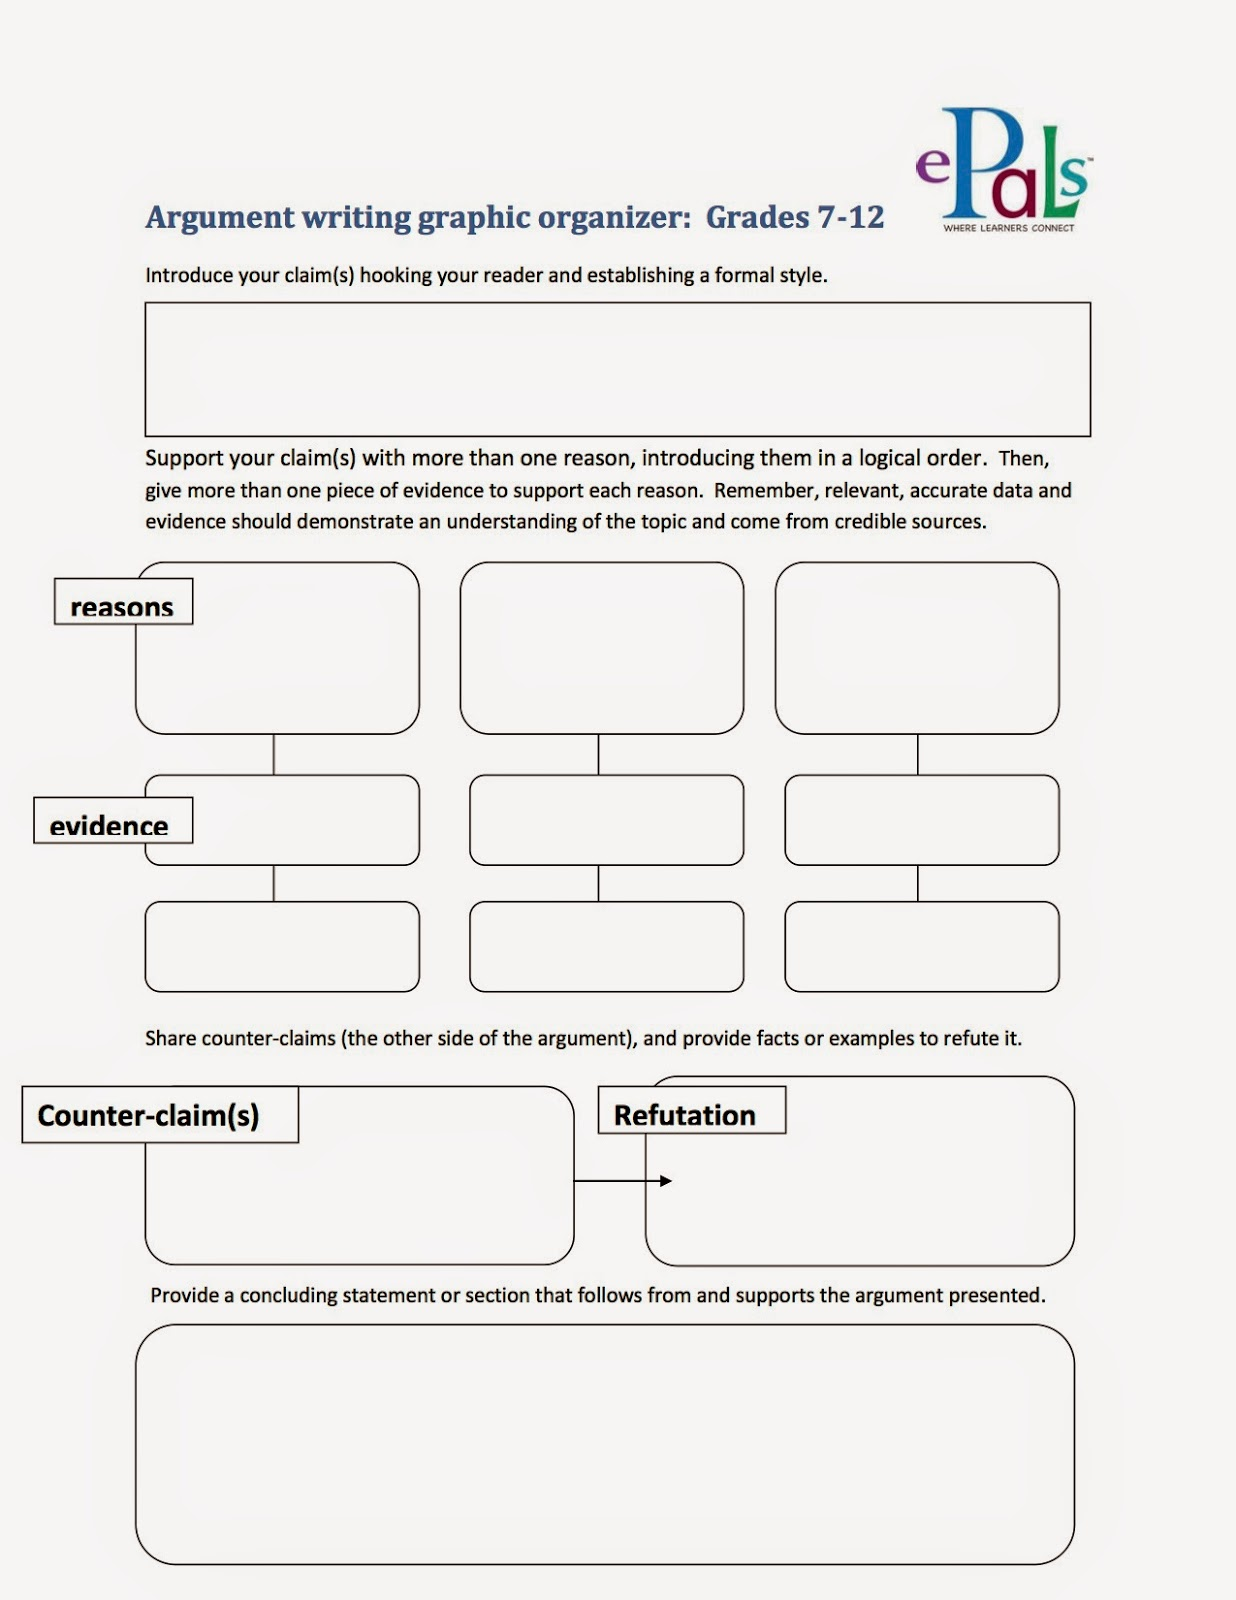 003 Argumentgraphicorganizer2bcopy Essay Example Argumentative Graphic Incredible Organizer For Middle School Pdf Full